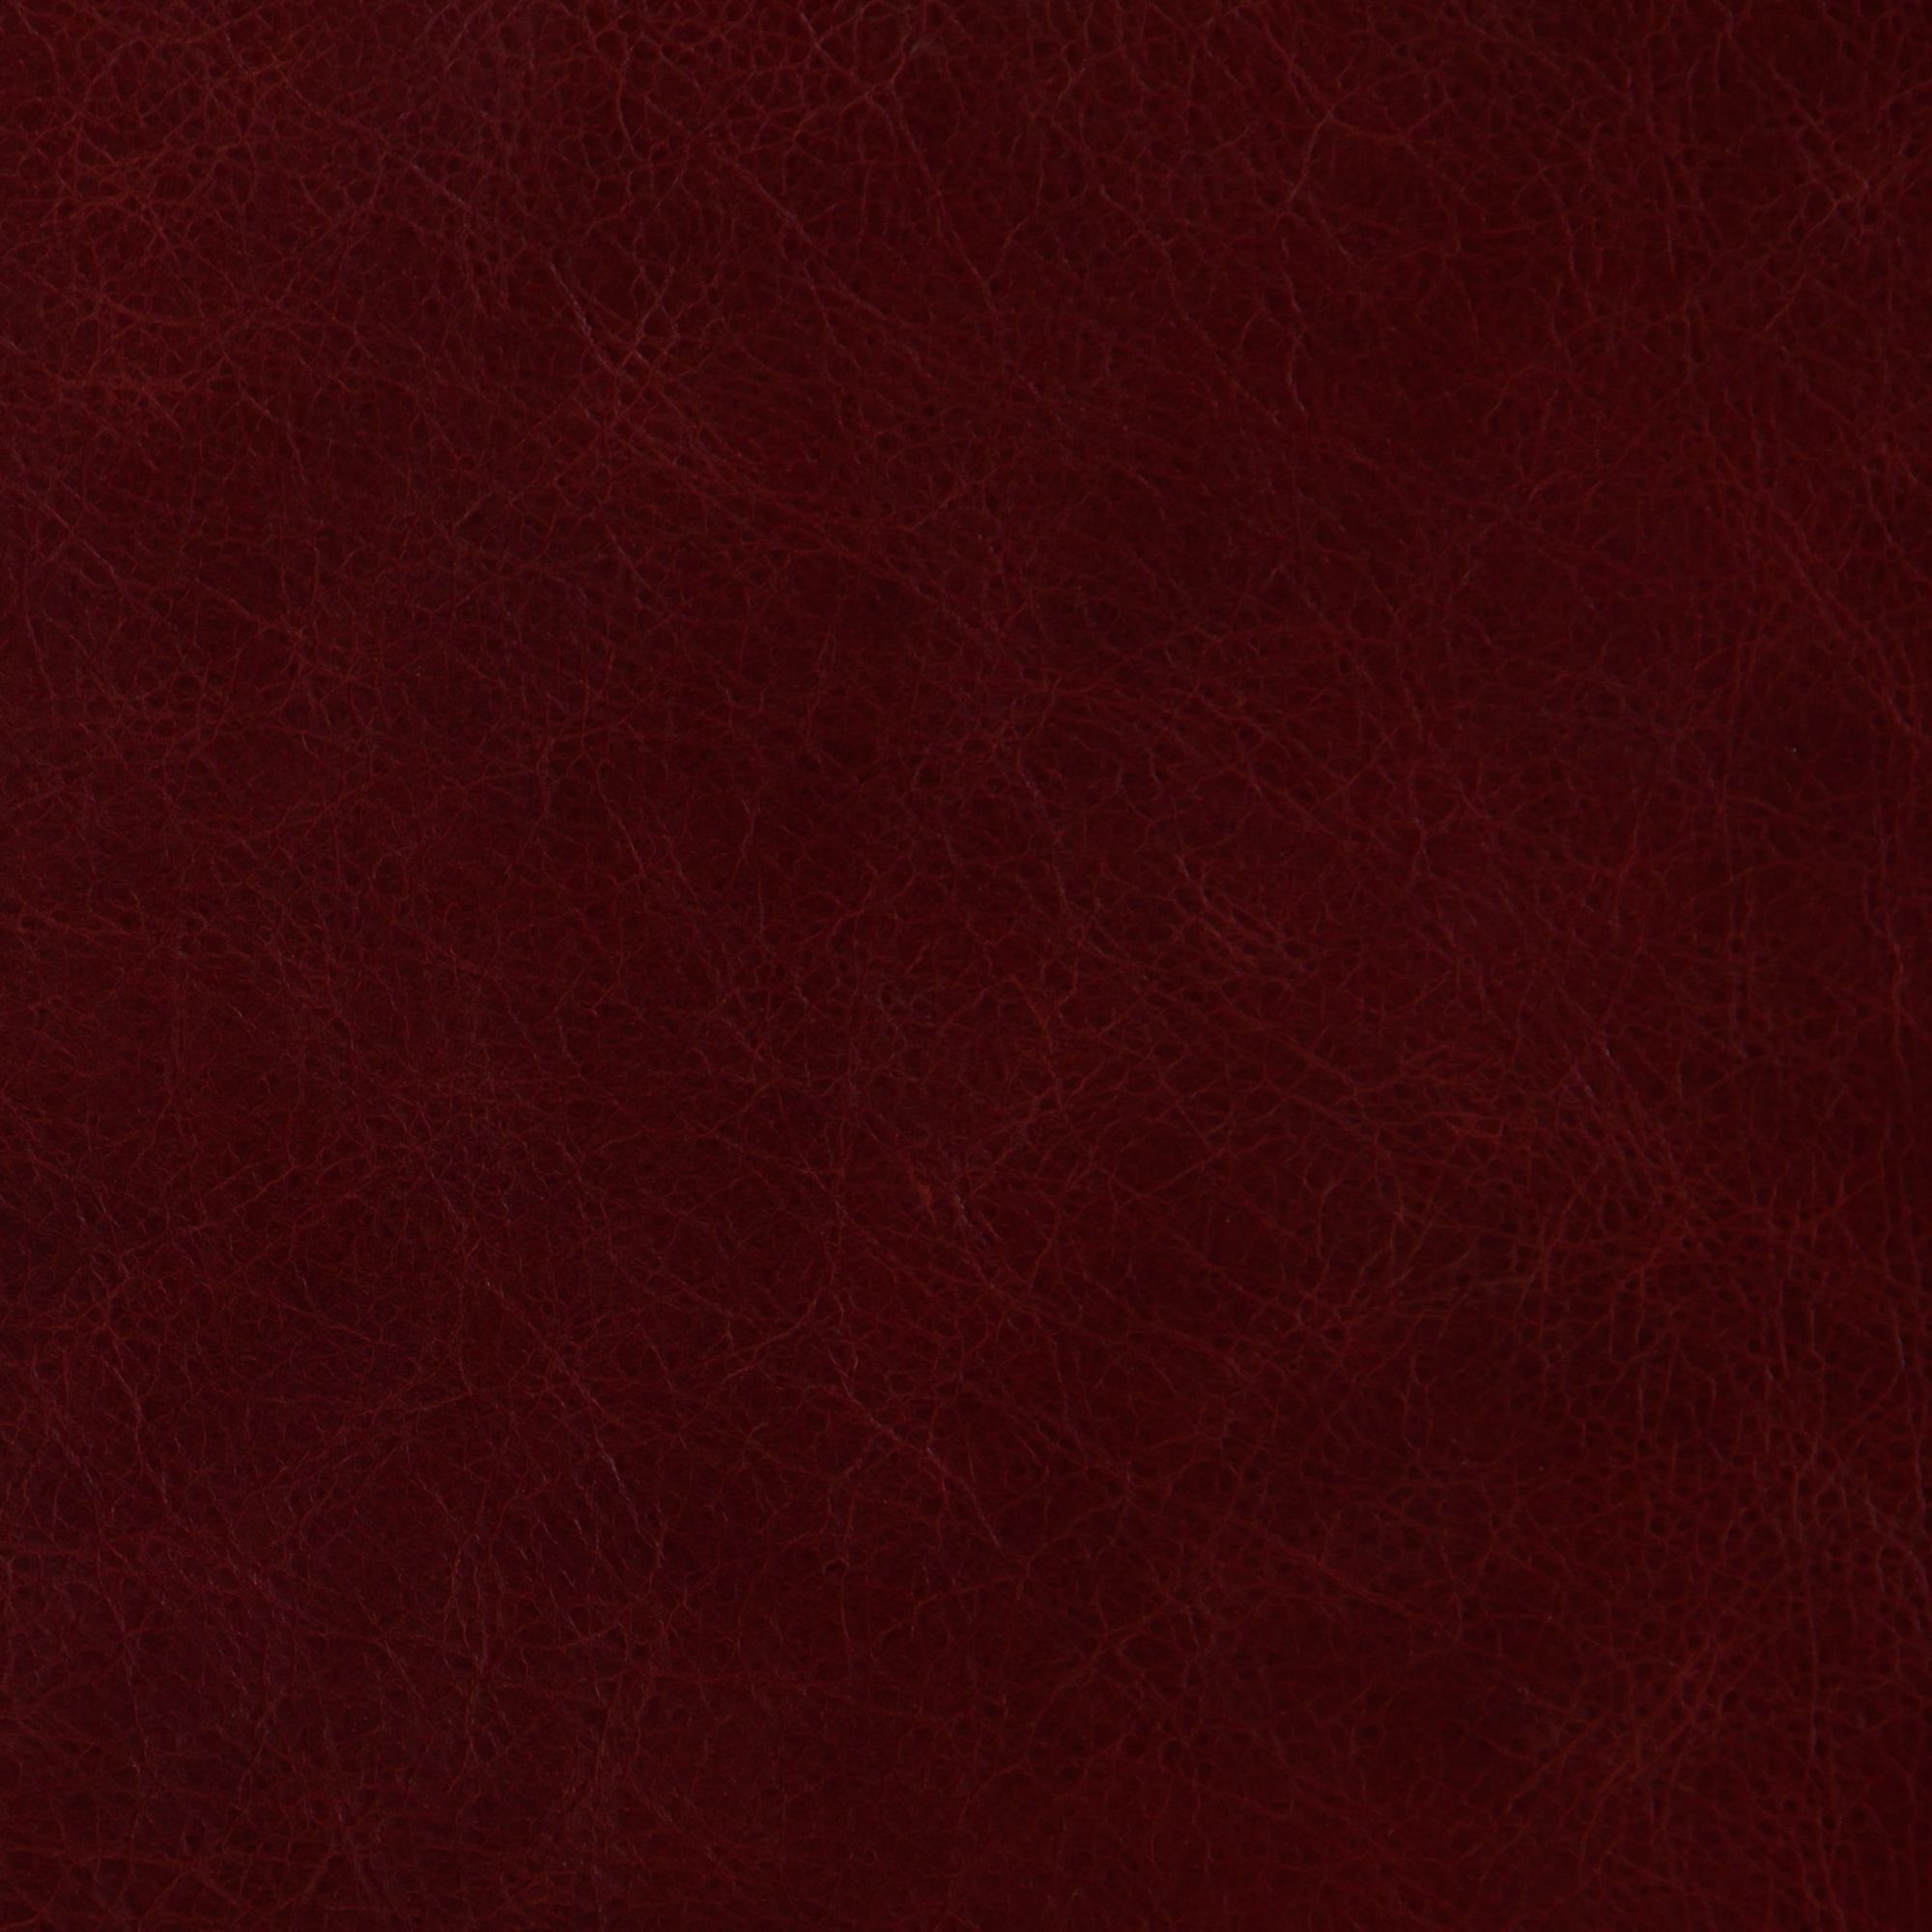 Berry Red Leather Swatch